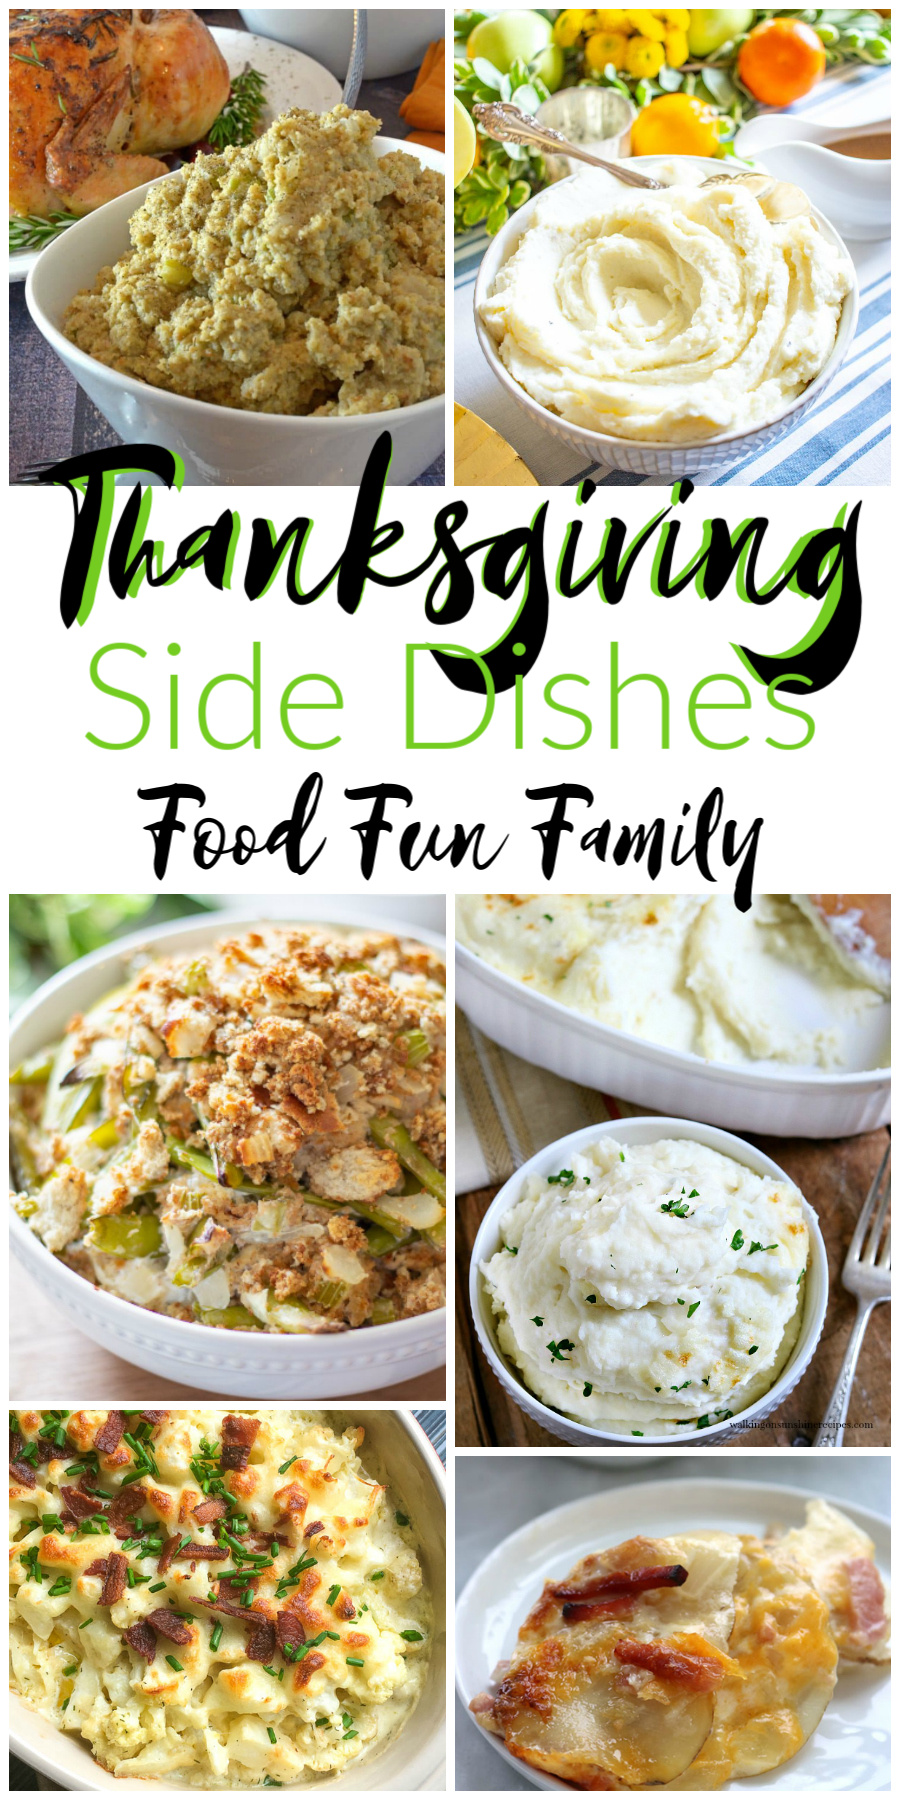 Thanksgiving Side Dishes - a Delicious Dishes Recipe Party with Food Fun Family